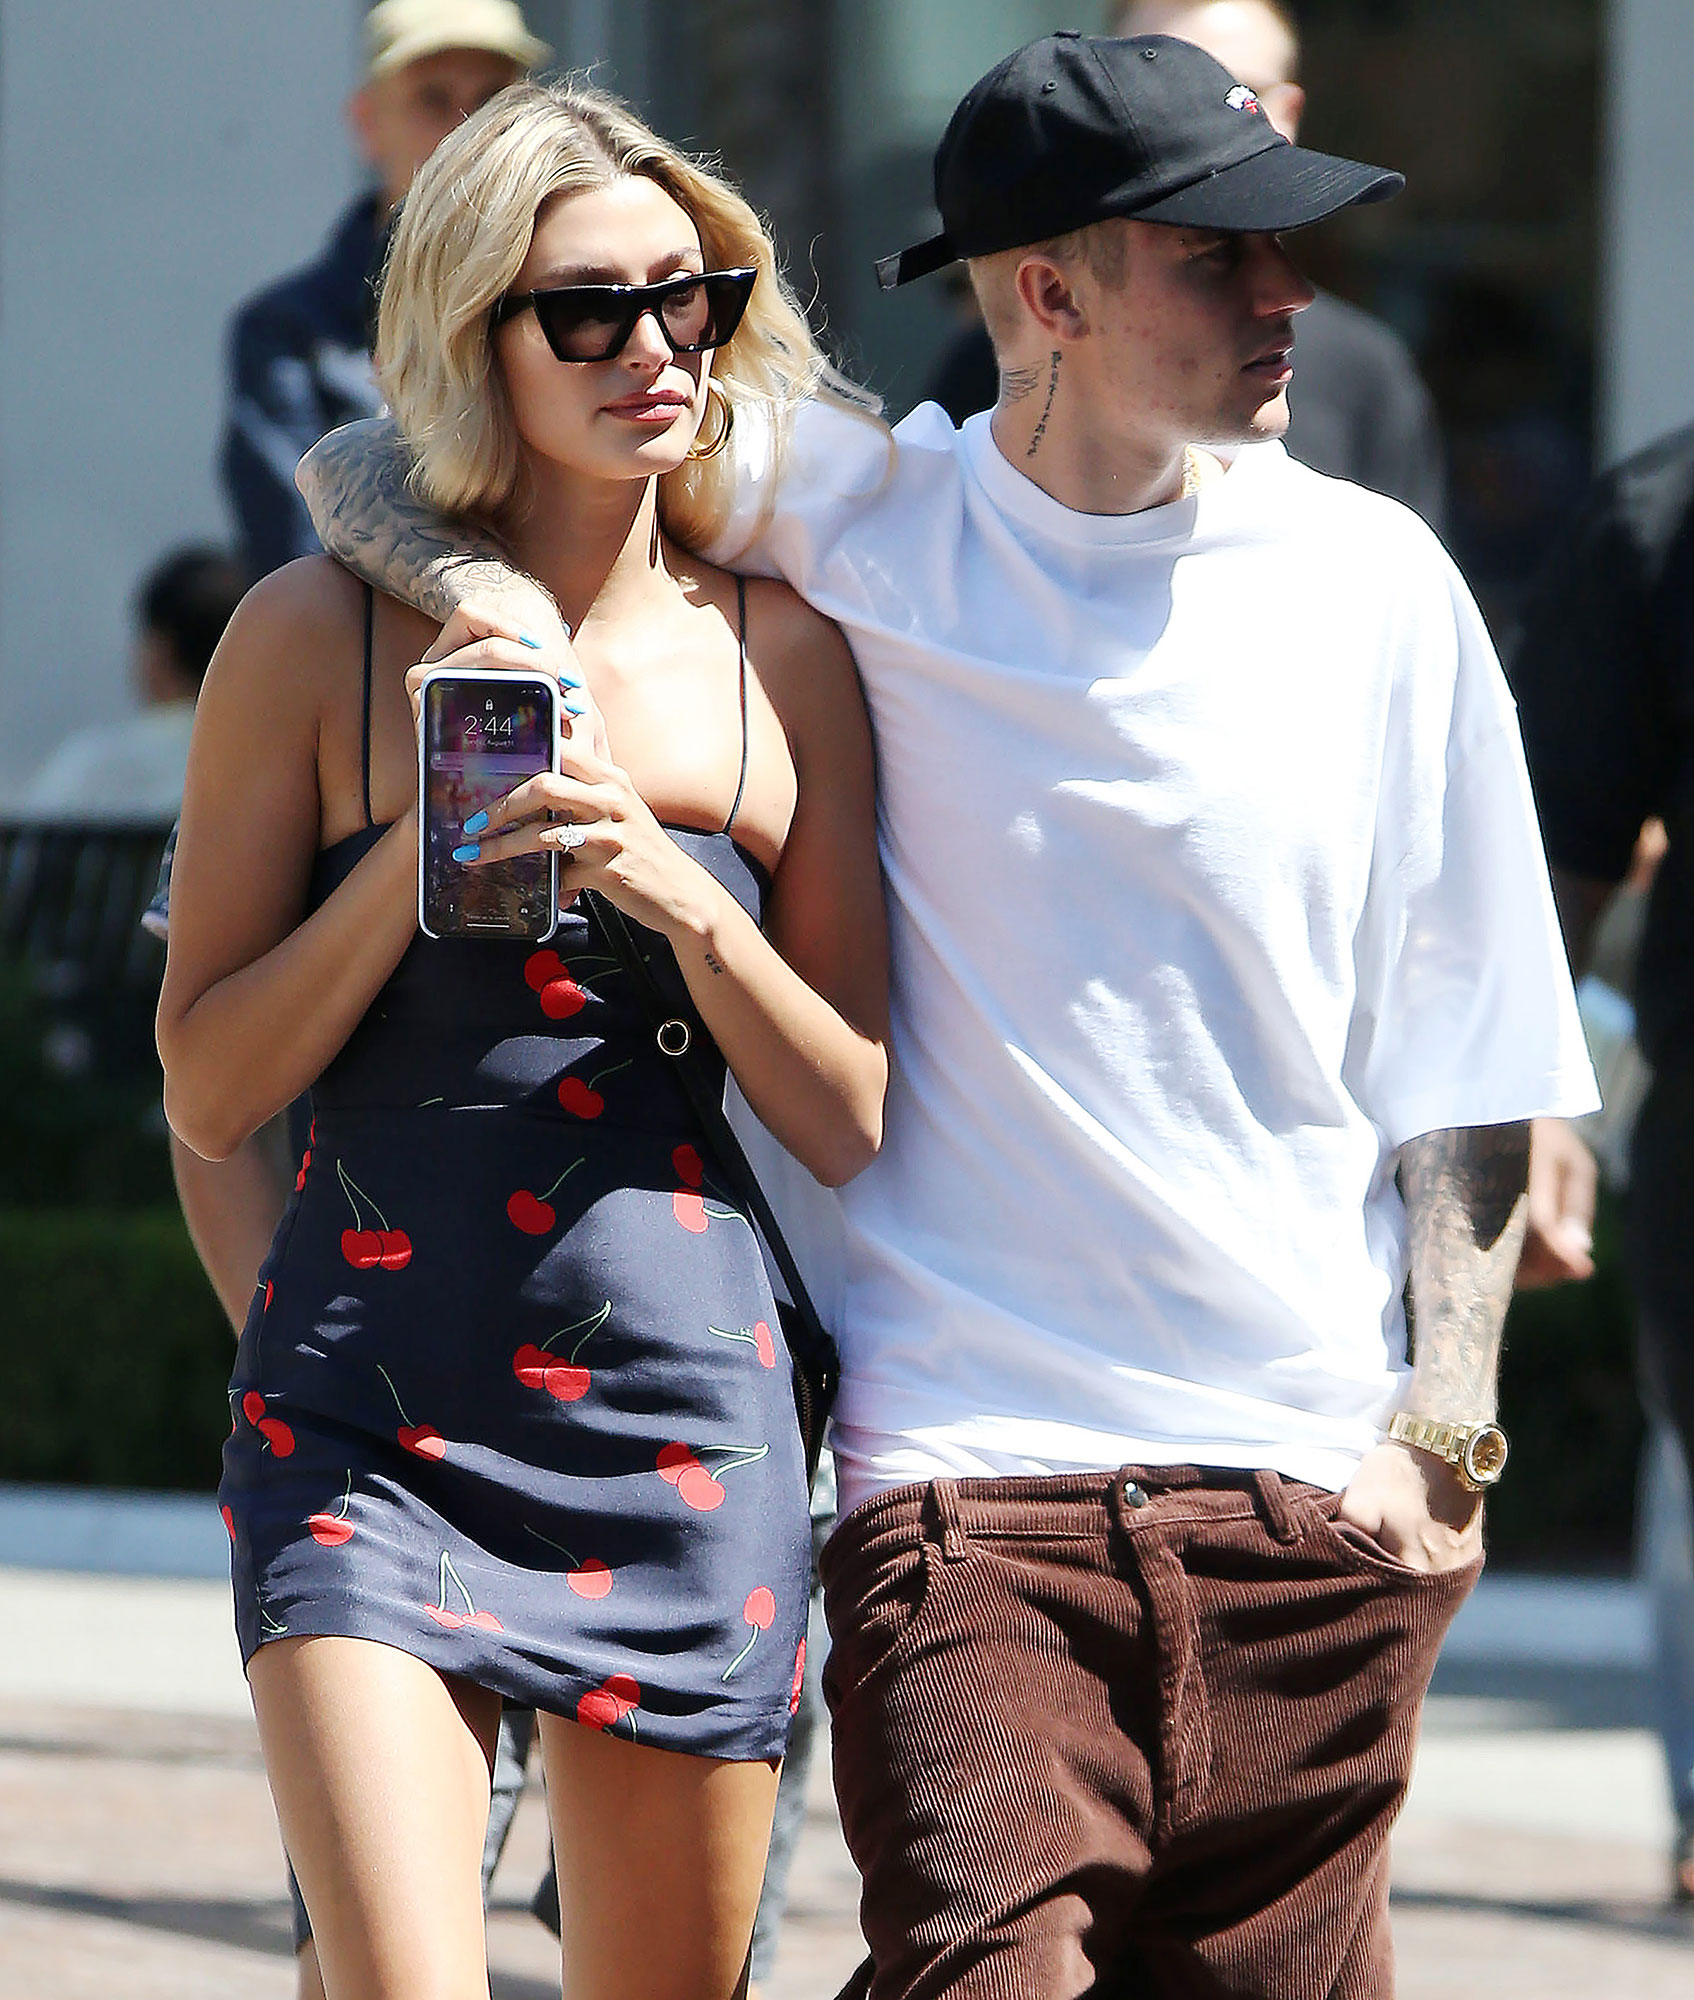 Who is justin bieber dating 2020 december